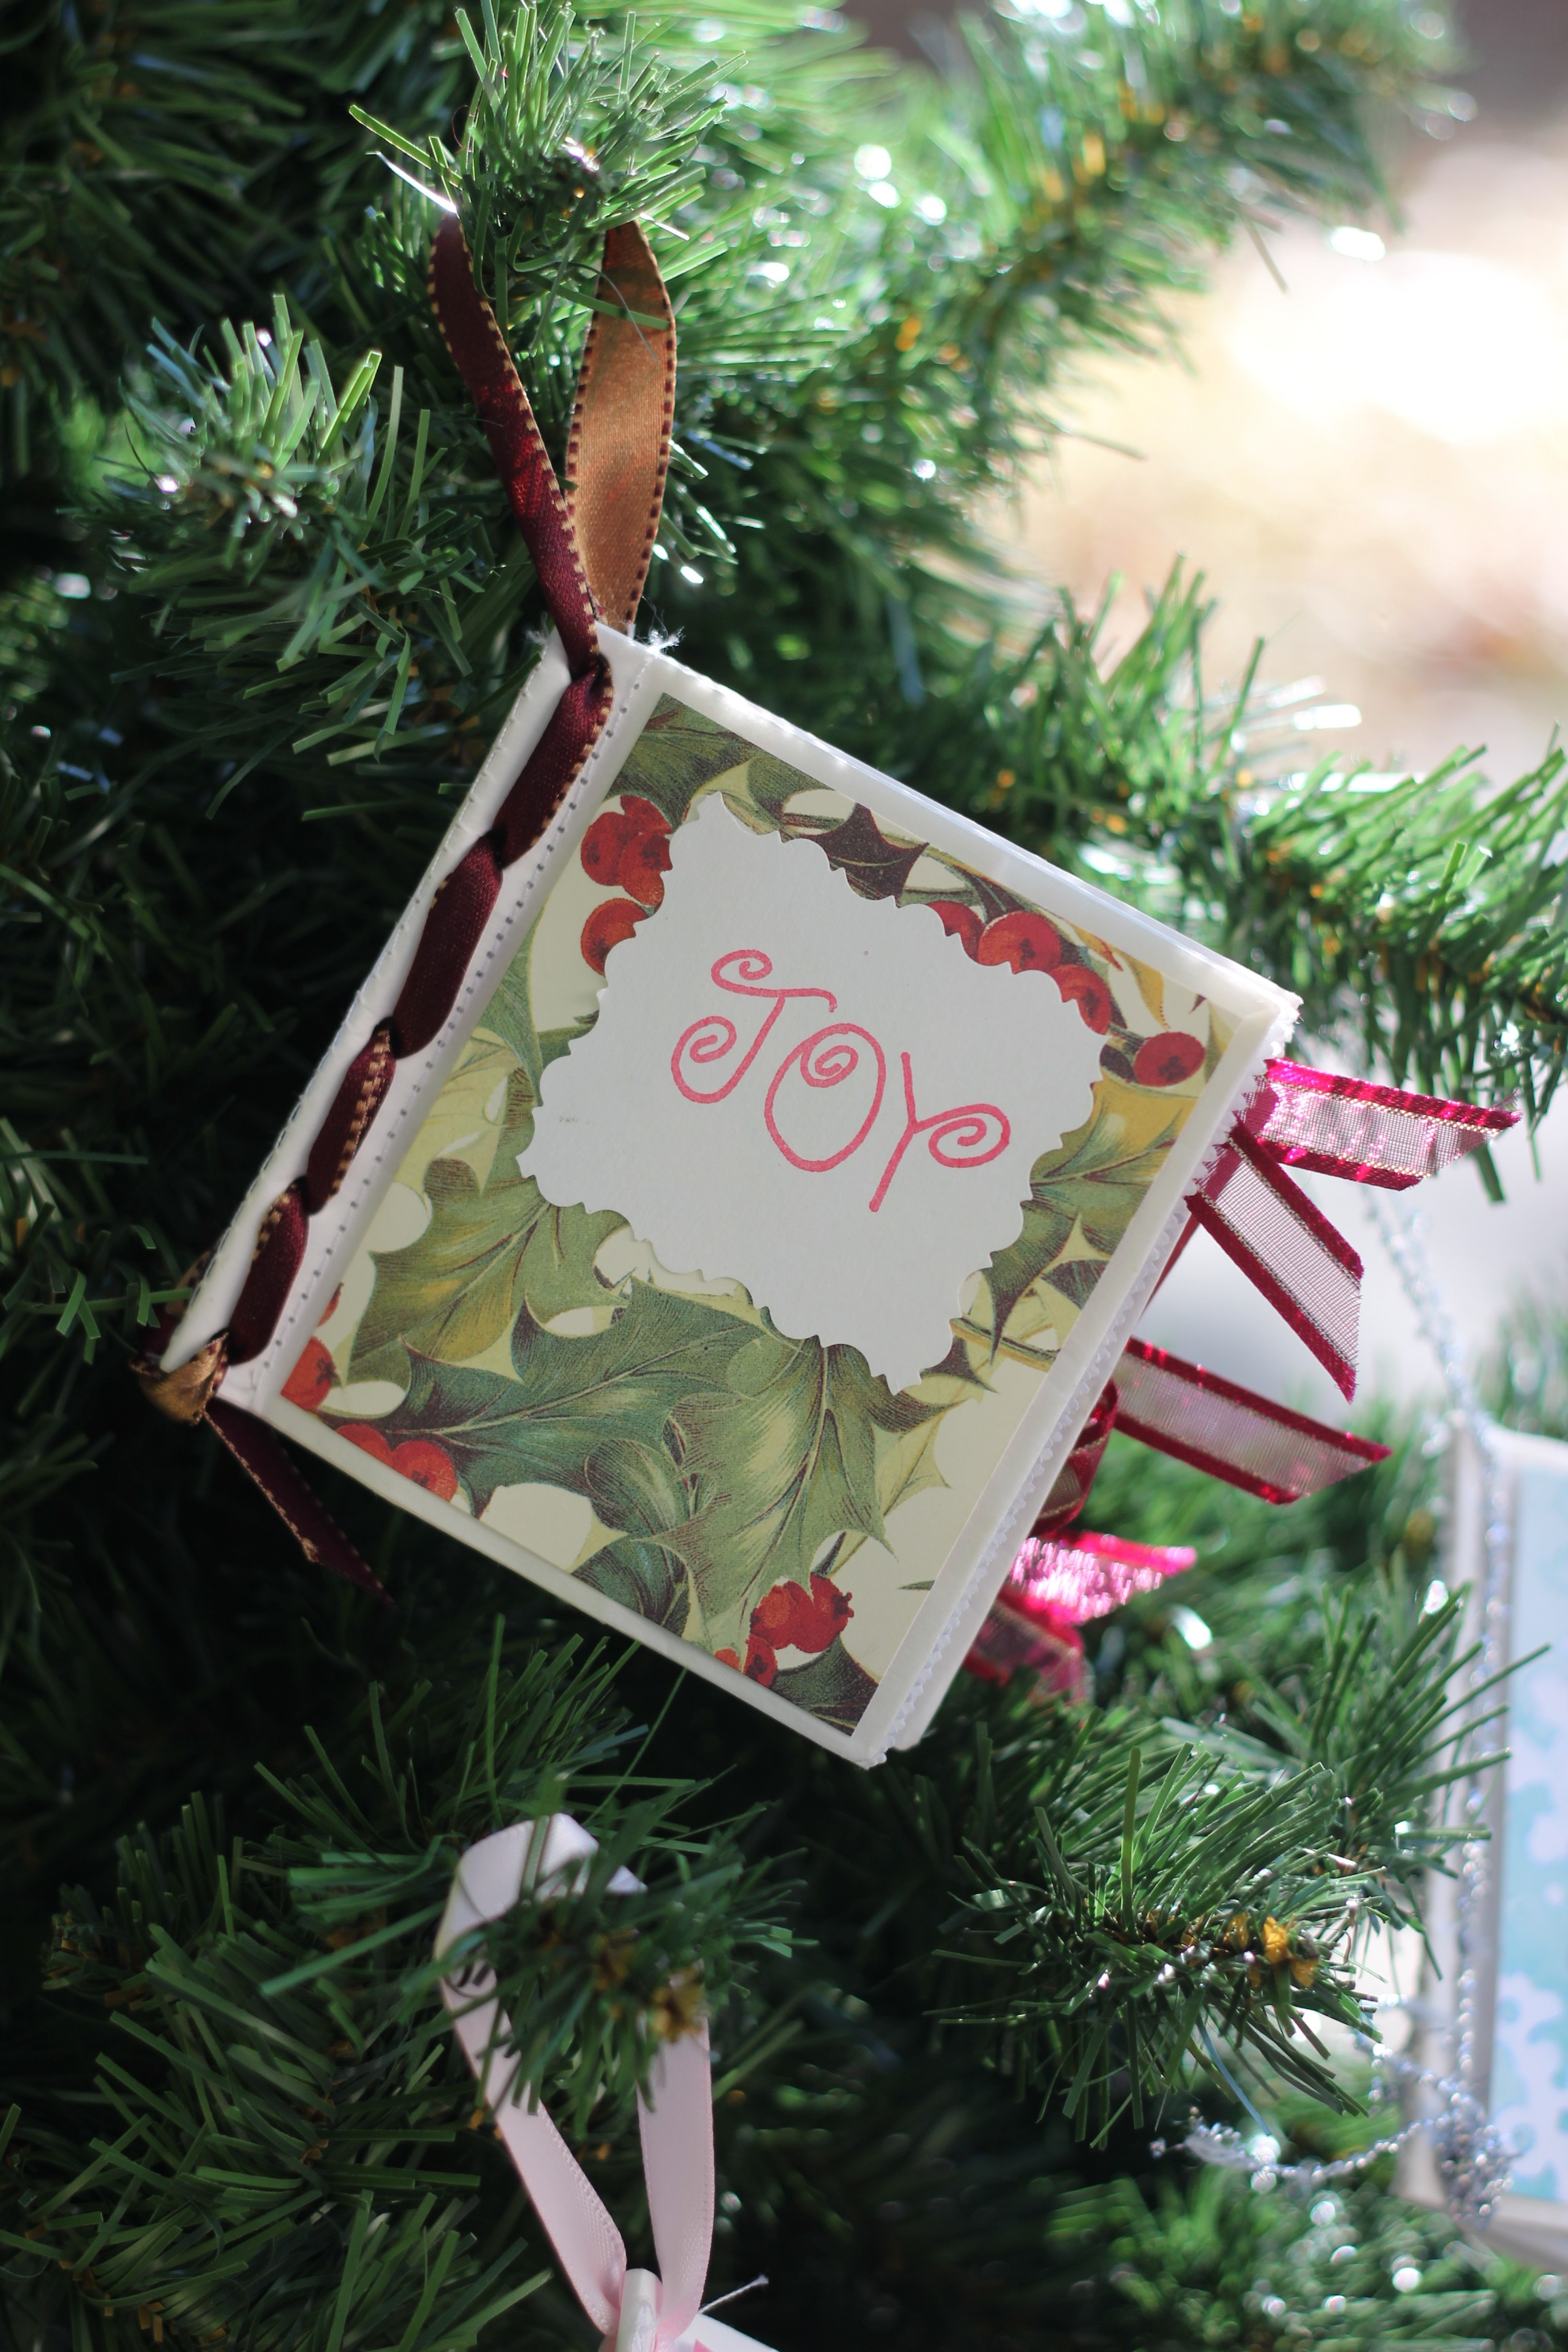 how to make paper christmas ornaments with pictures sweet t makes three. Black Bedroom Furniture Sets. Home Design Ideas